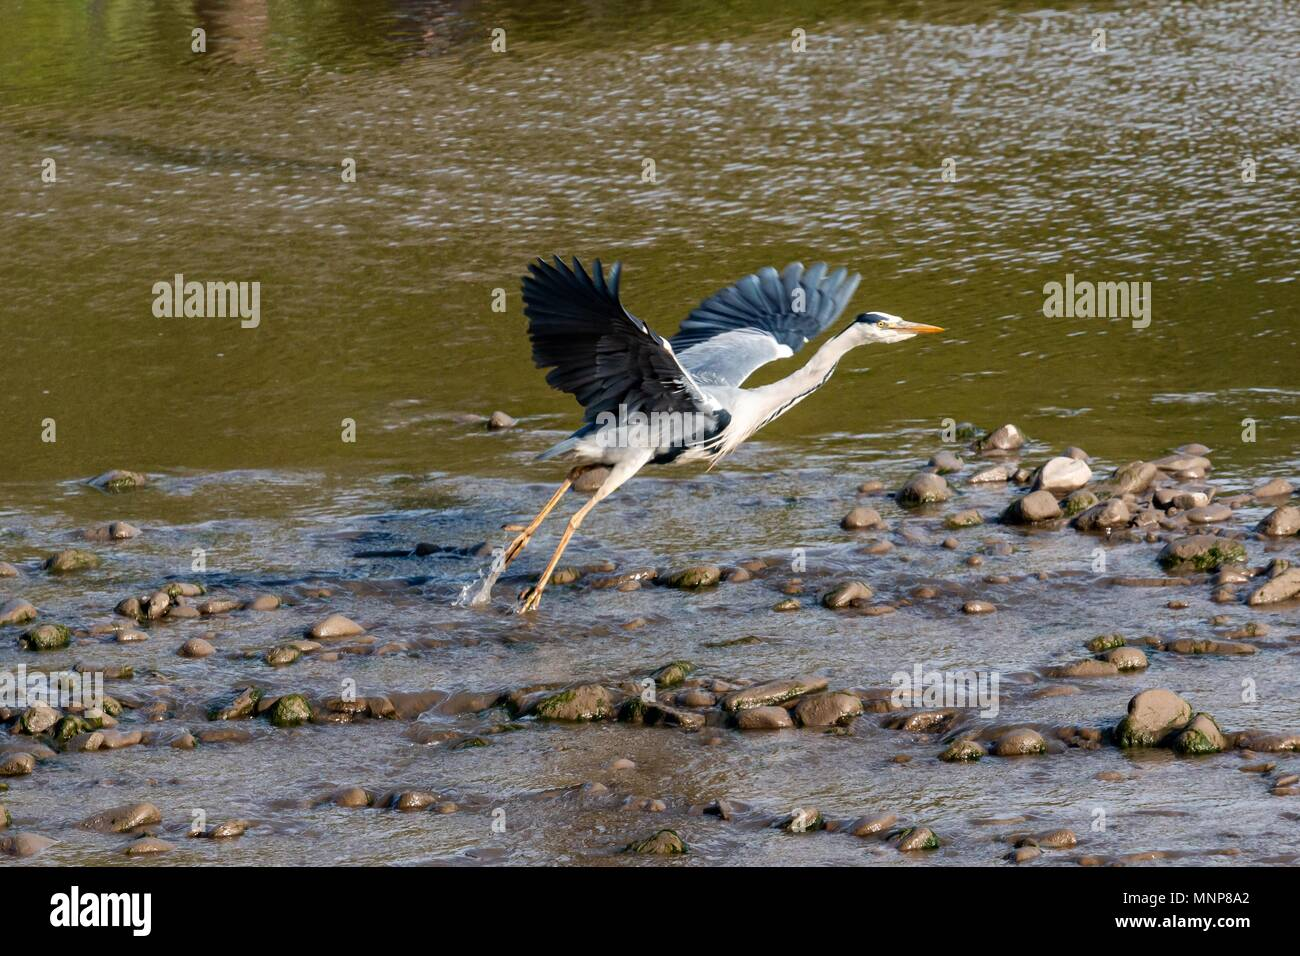 River Lune, Lancaster, United Kingdom,  18th May 2018.                           Grey Heron taked flight from the River Lune Credit: Photographing_North/Alamy Live News - Stock Image